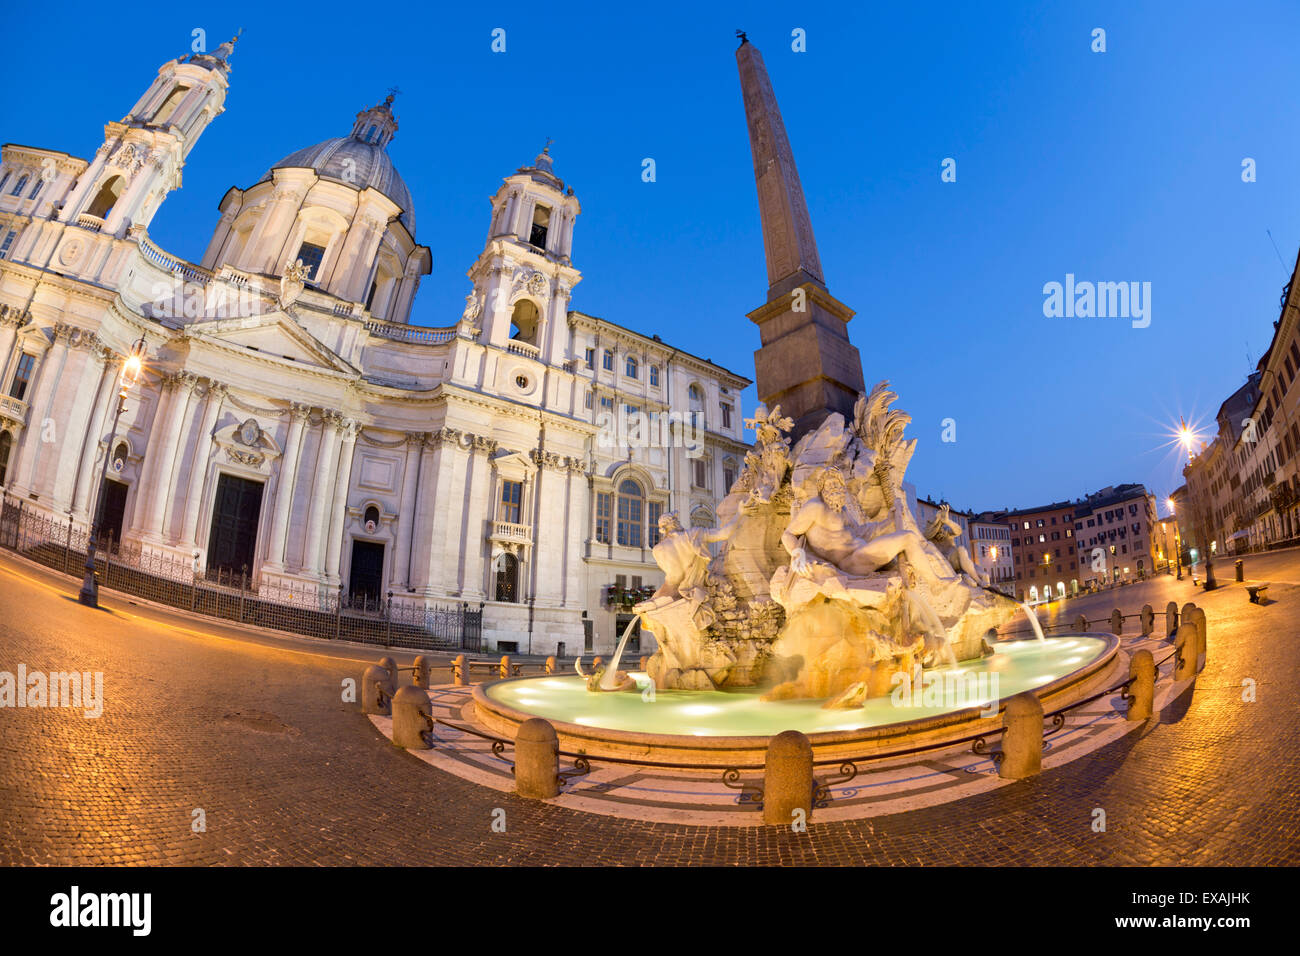 Bernini's Fountain of the Four Rivers and church of Sant'Agnese in Agone at night, Piazza Navona, Rome, - Stock Image